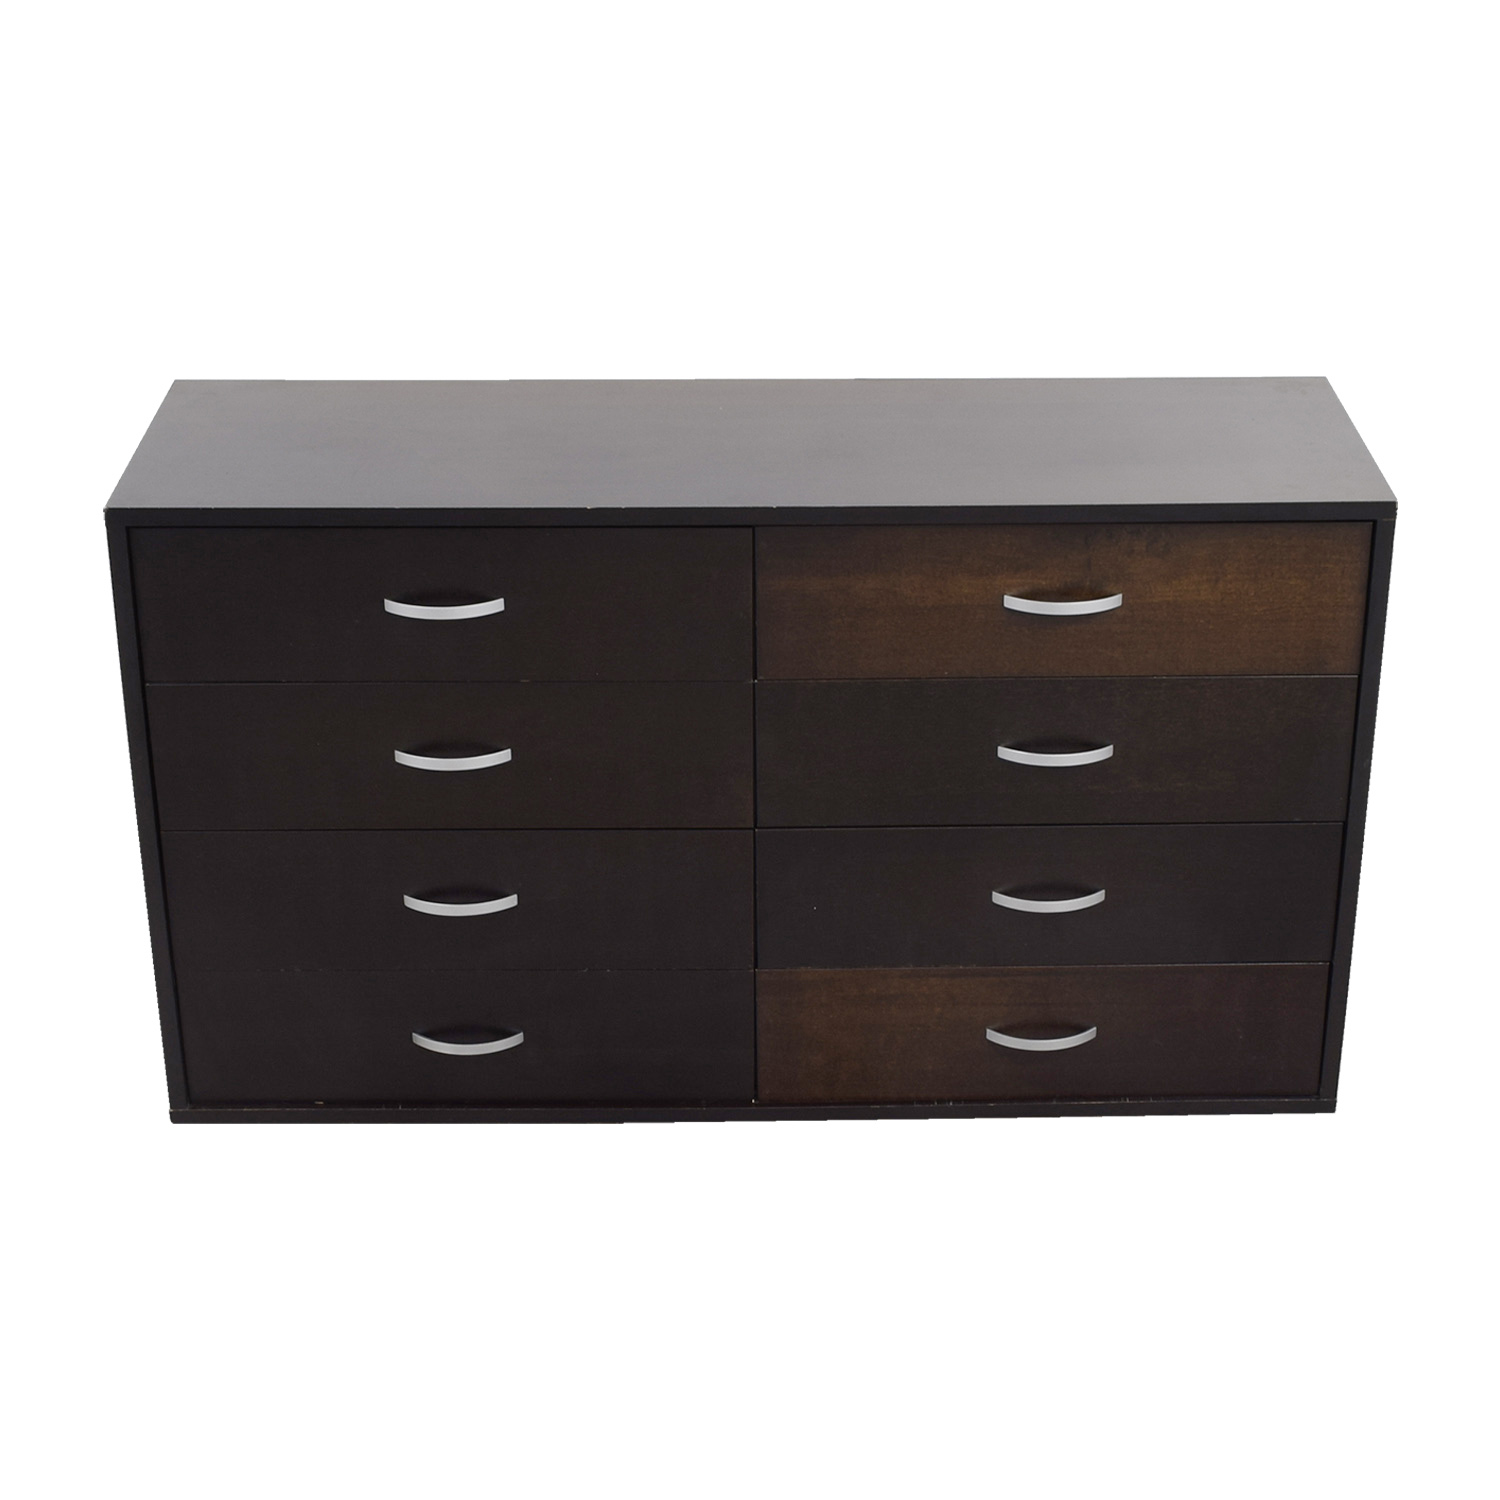 Black Eight-Drawer Dresser dimensions